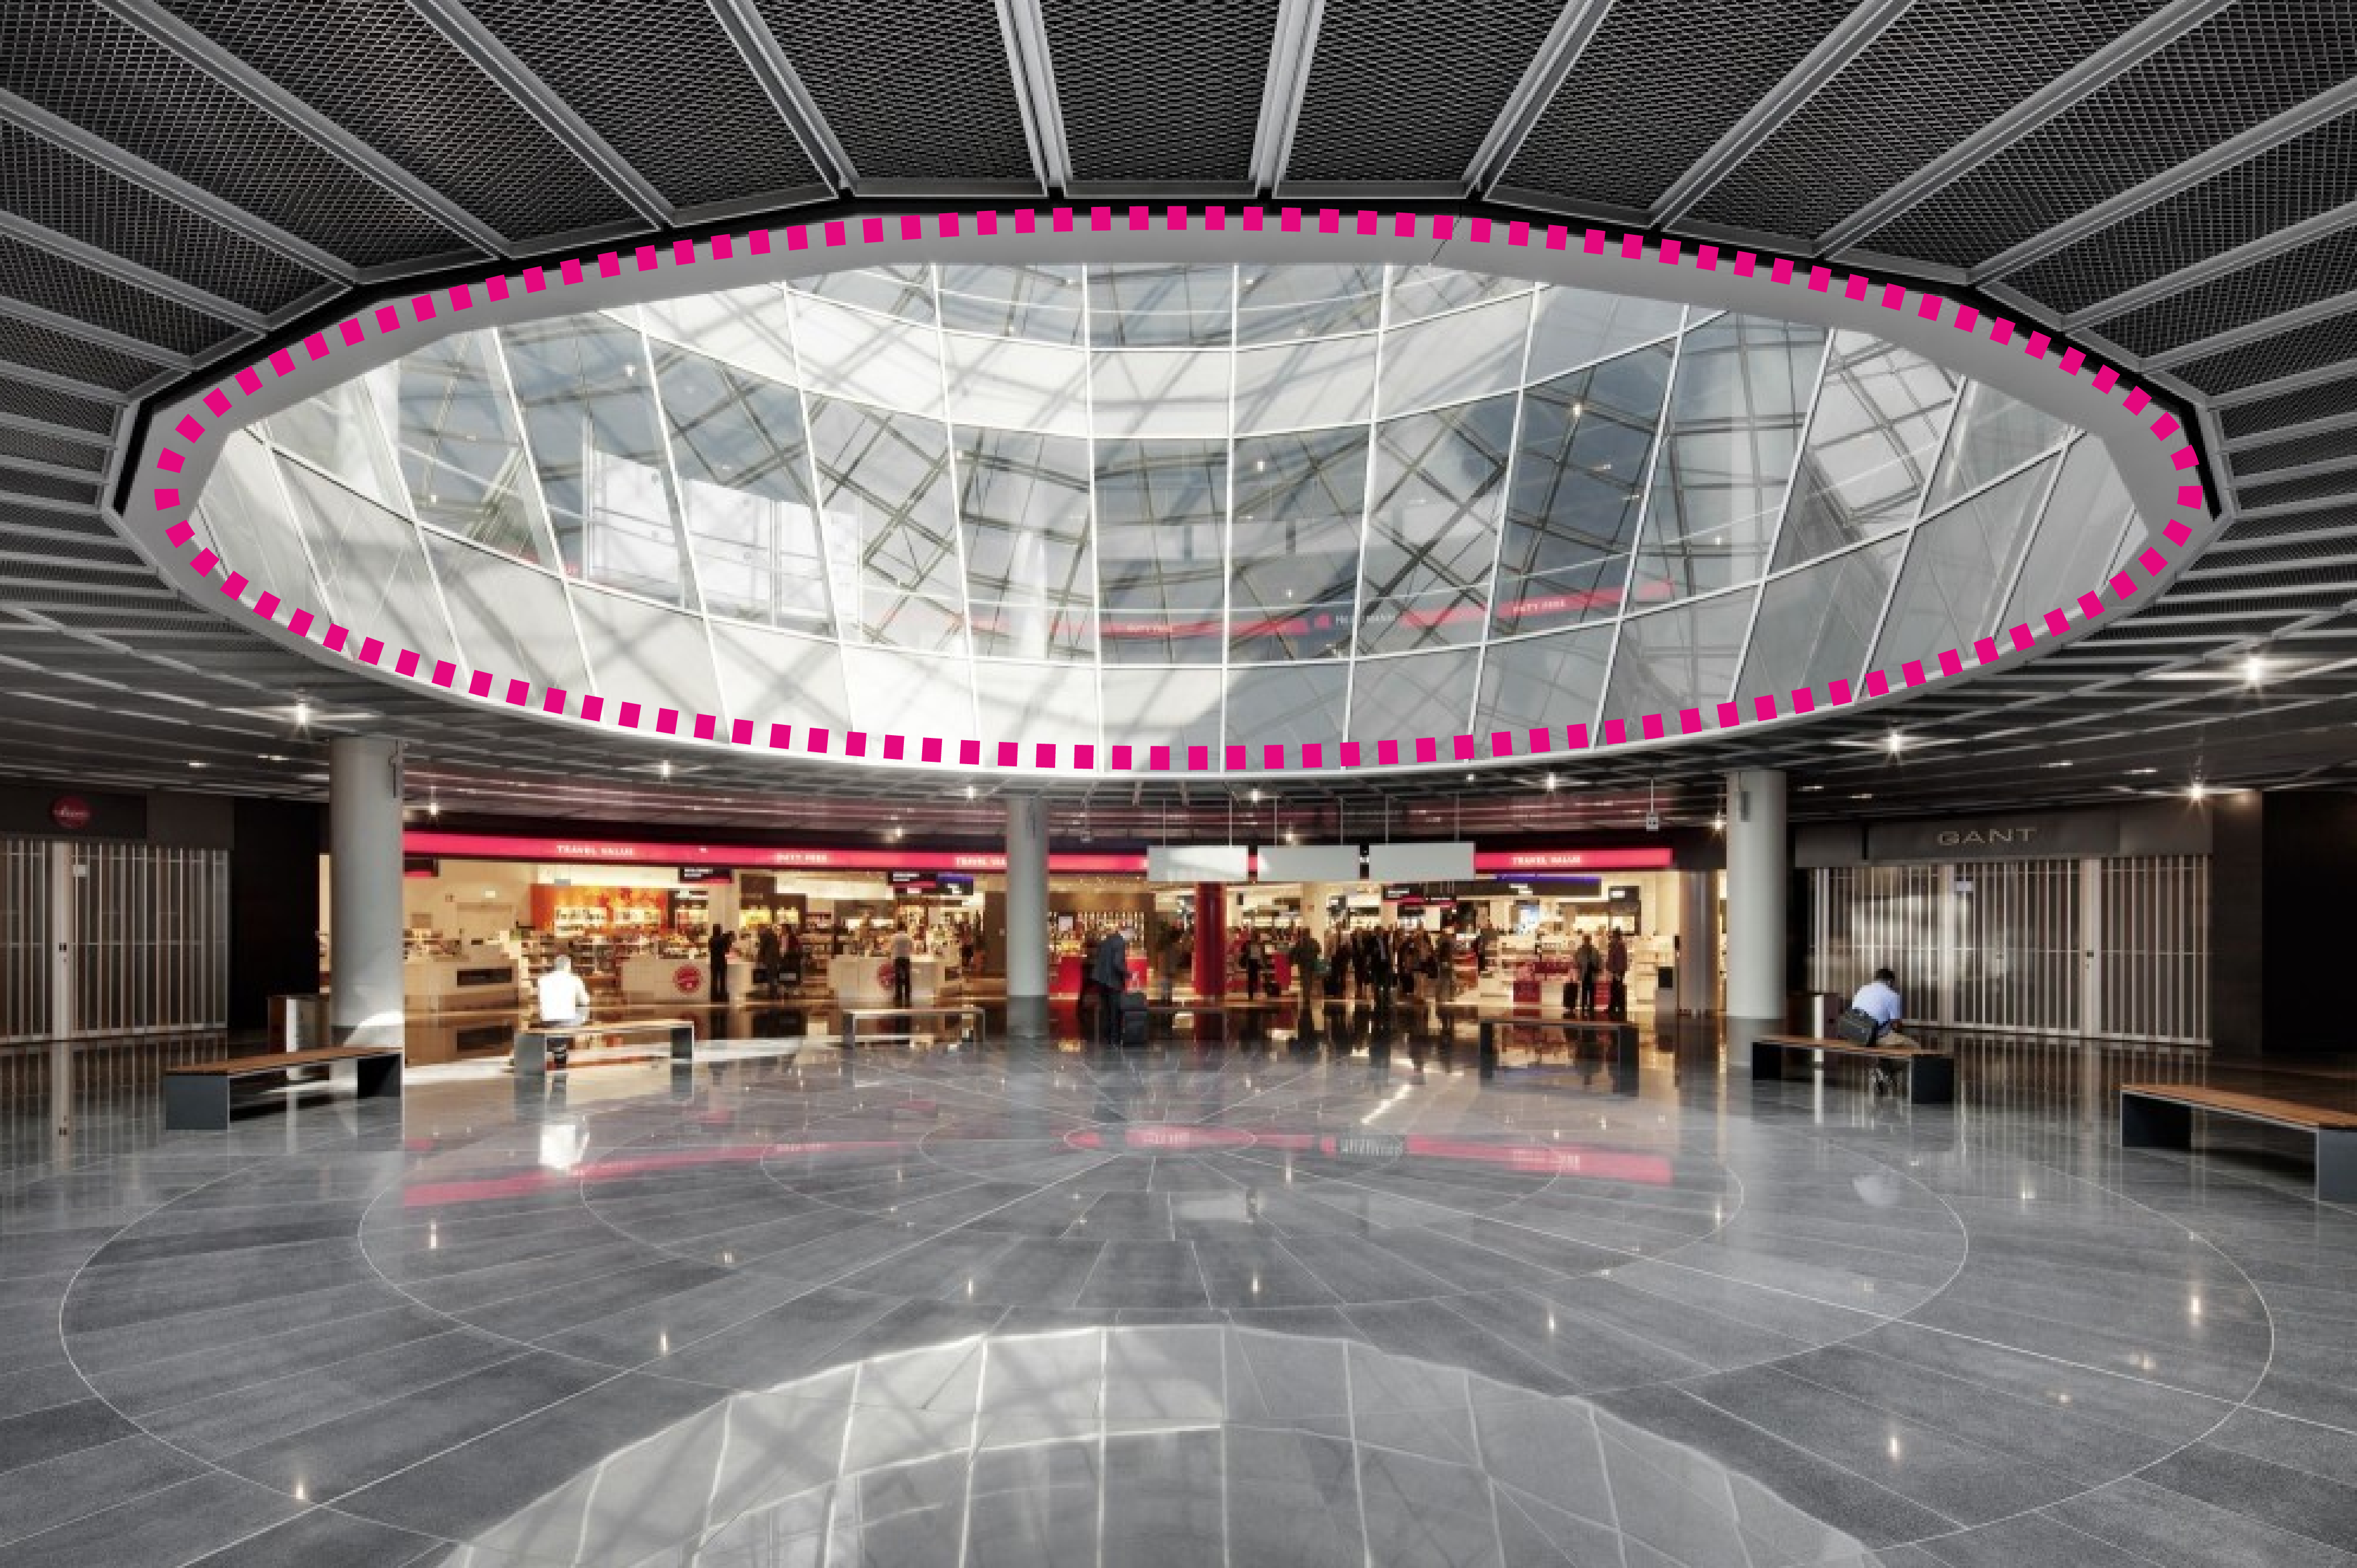 frankfurt airport / gmp Architekten / public space go through the whole space and programs surround the hole